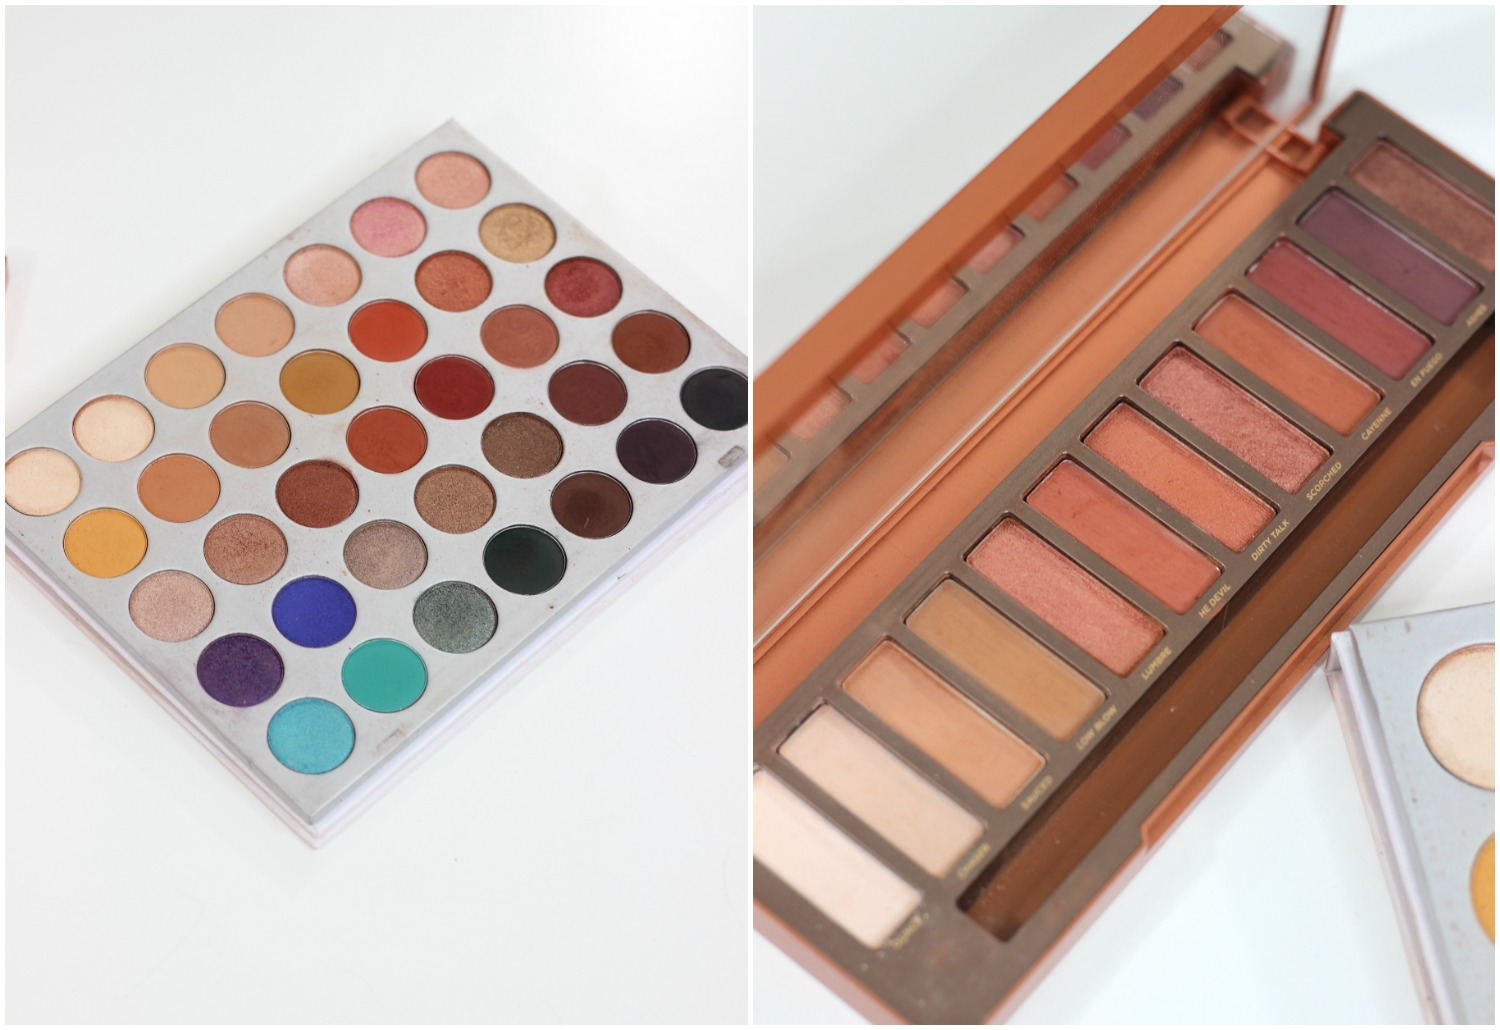 Jaclyn Hill Morphe Palette vs Urban Decay Naked Heat Palette